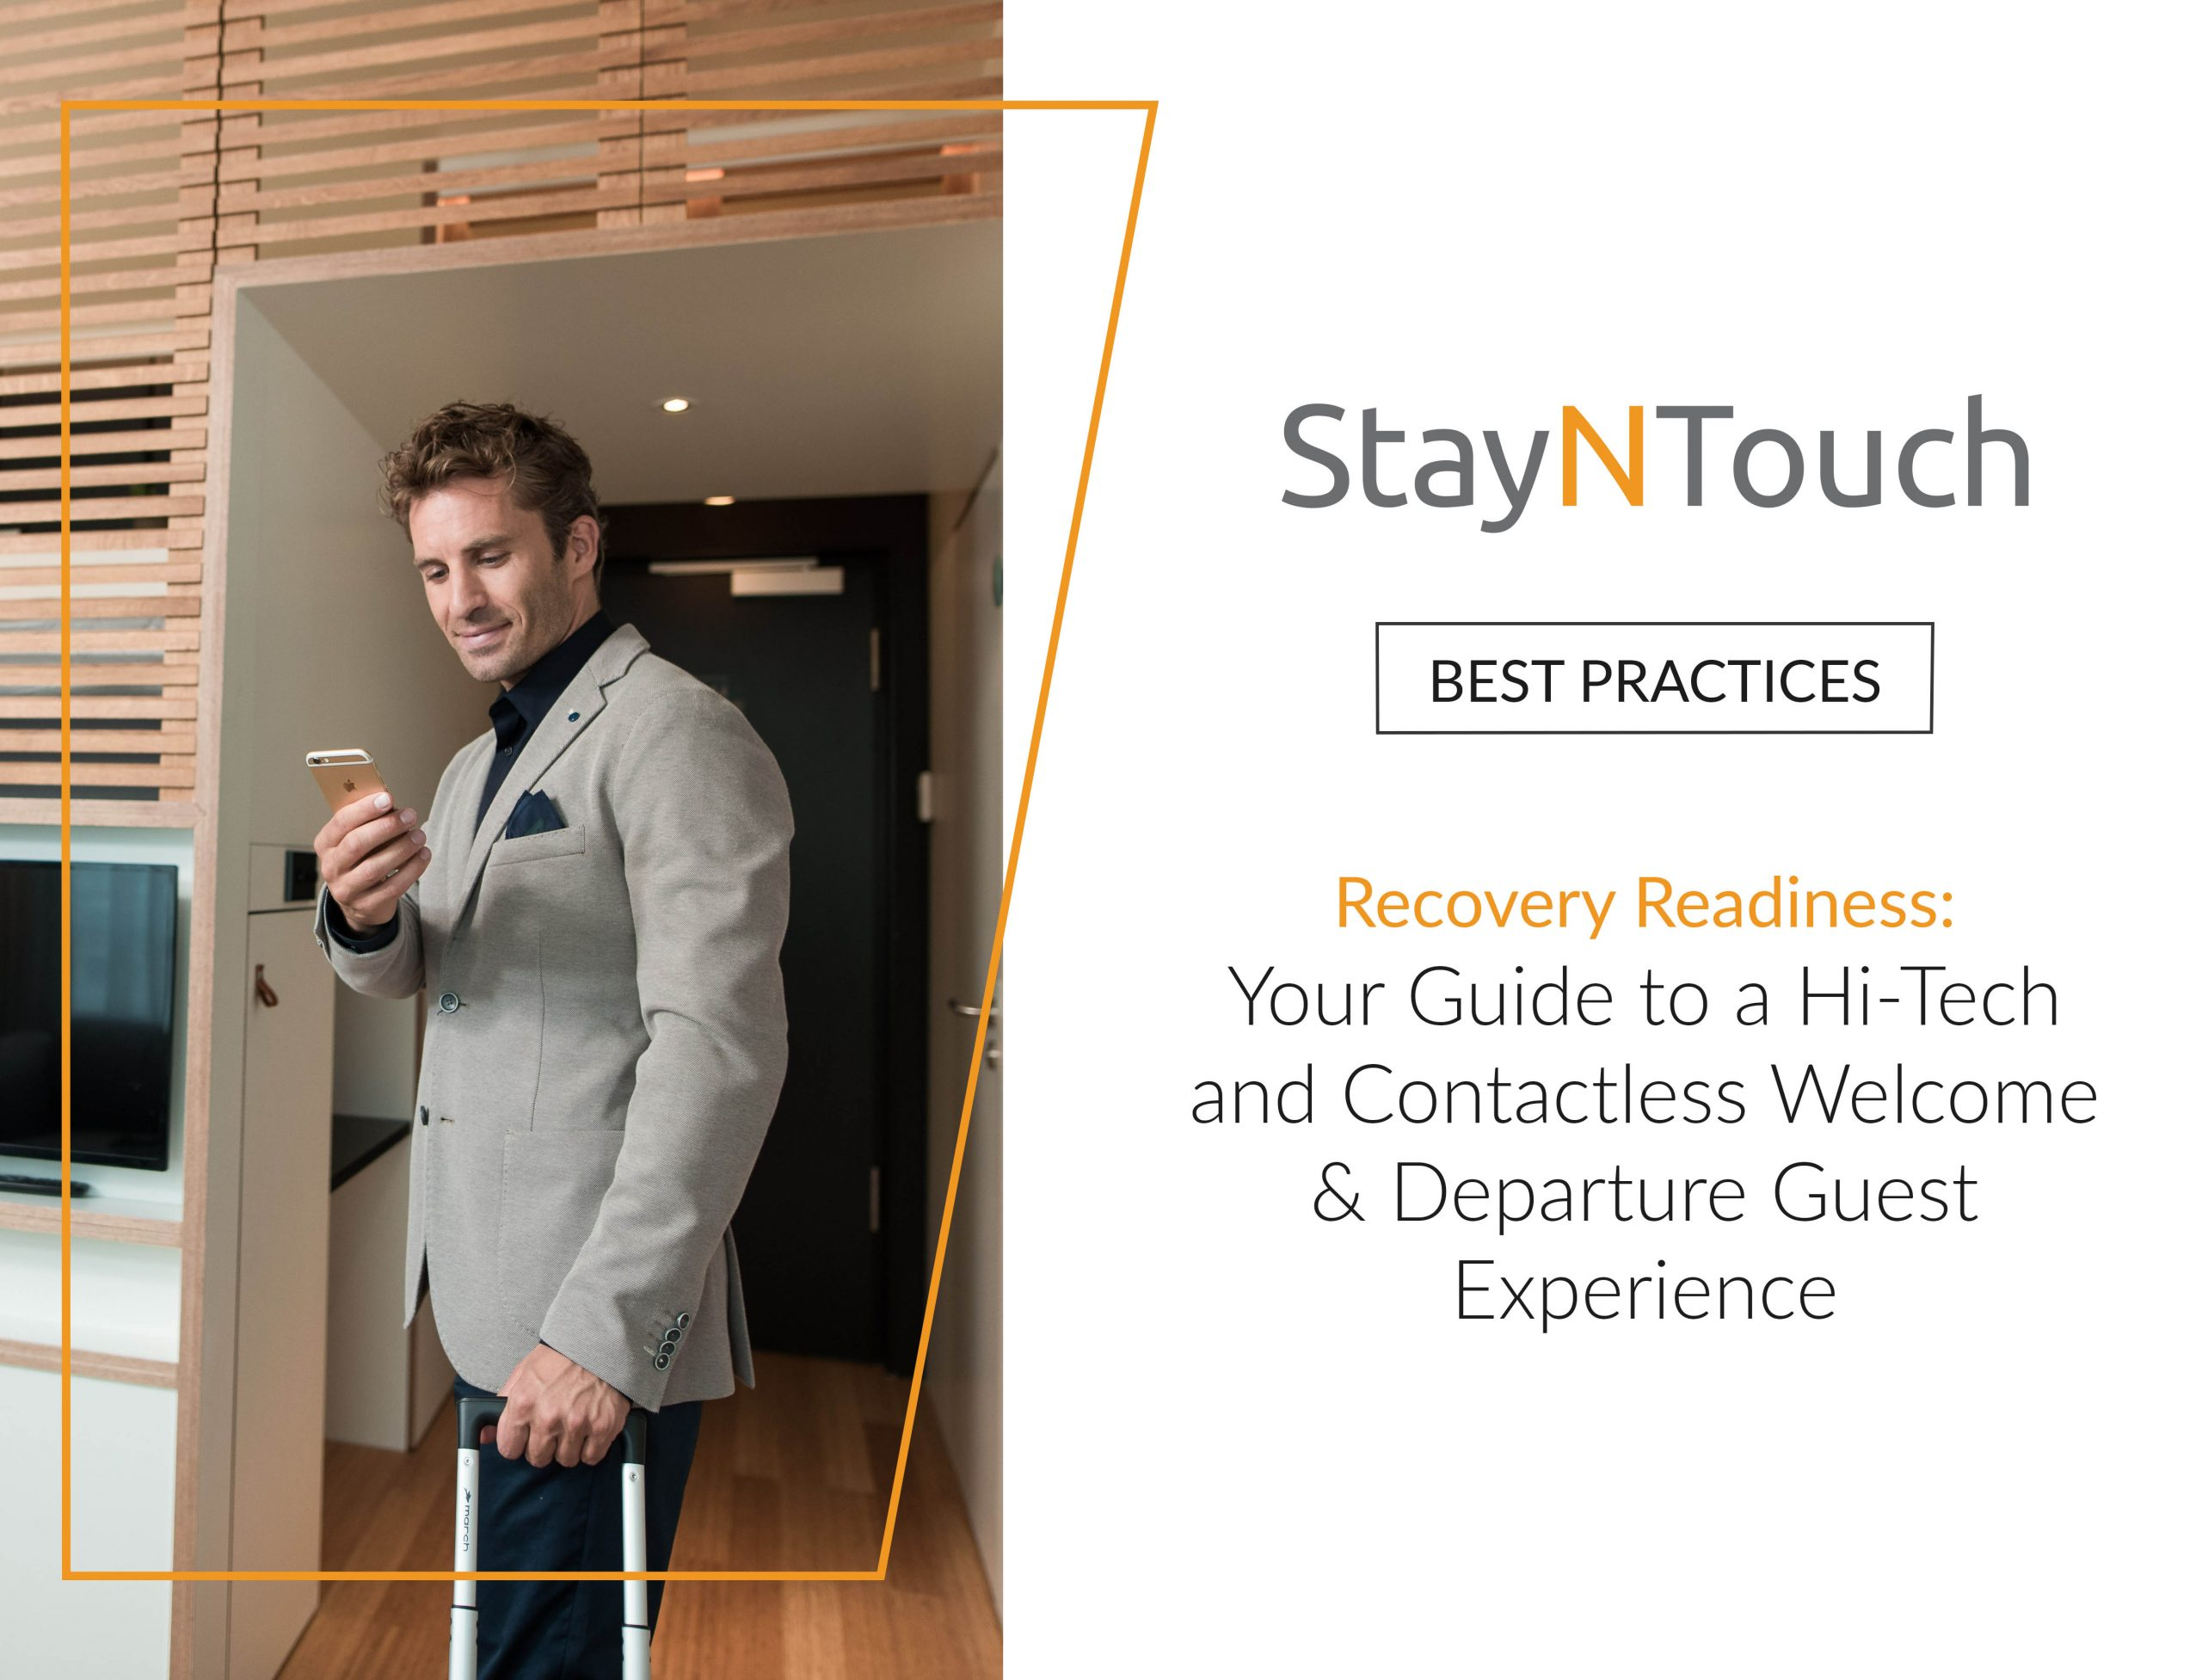 StayNTouch Best Practices Recovery Readiness: Your Guide to a Hi-Tech and Contactless Welcome & Departure Guest Experience